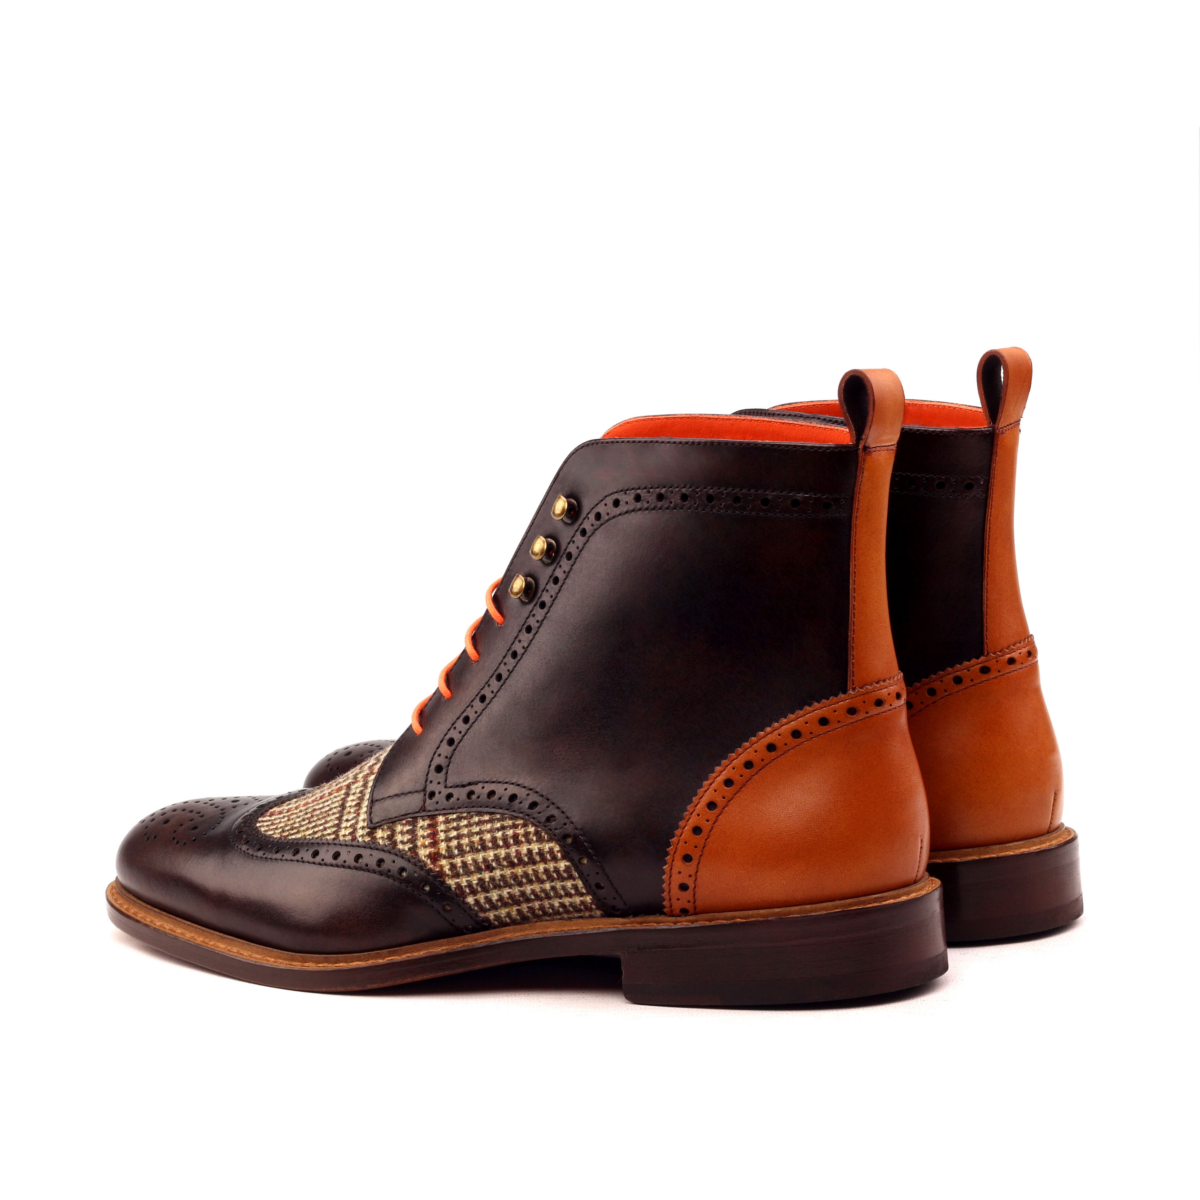 Bota wingtip en boxcalf y tweed